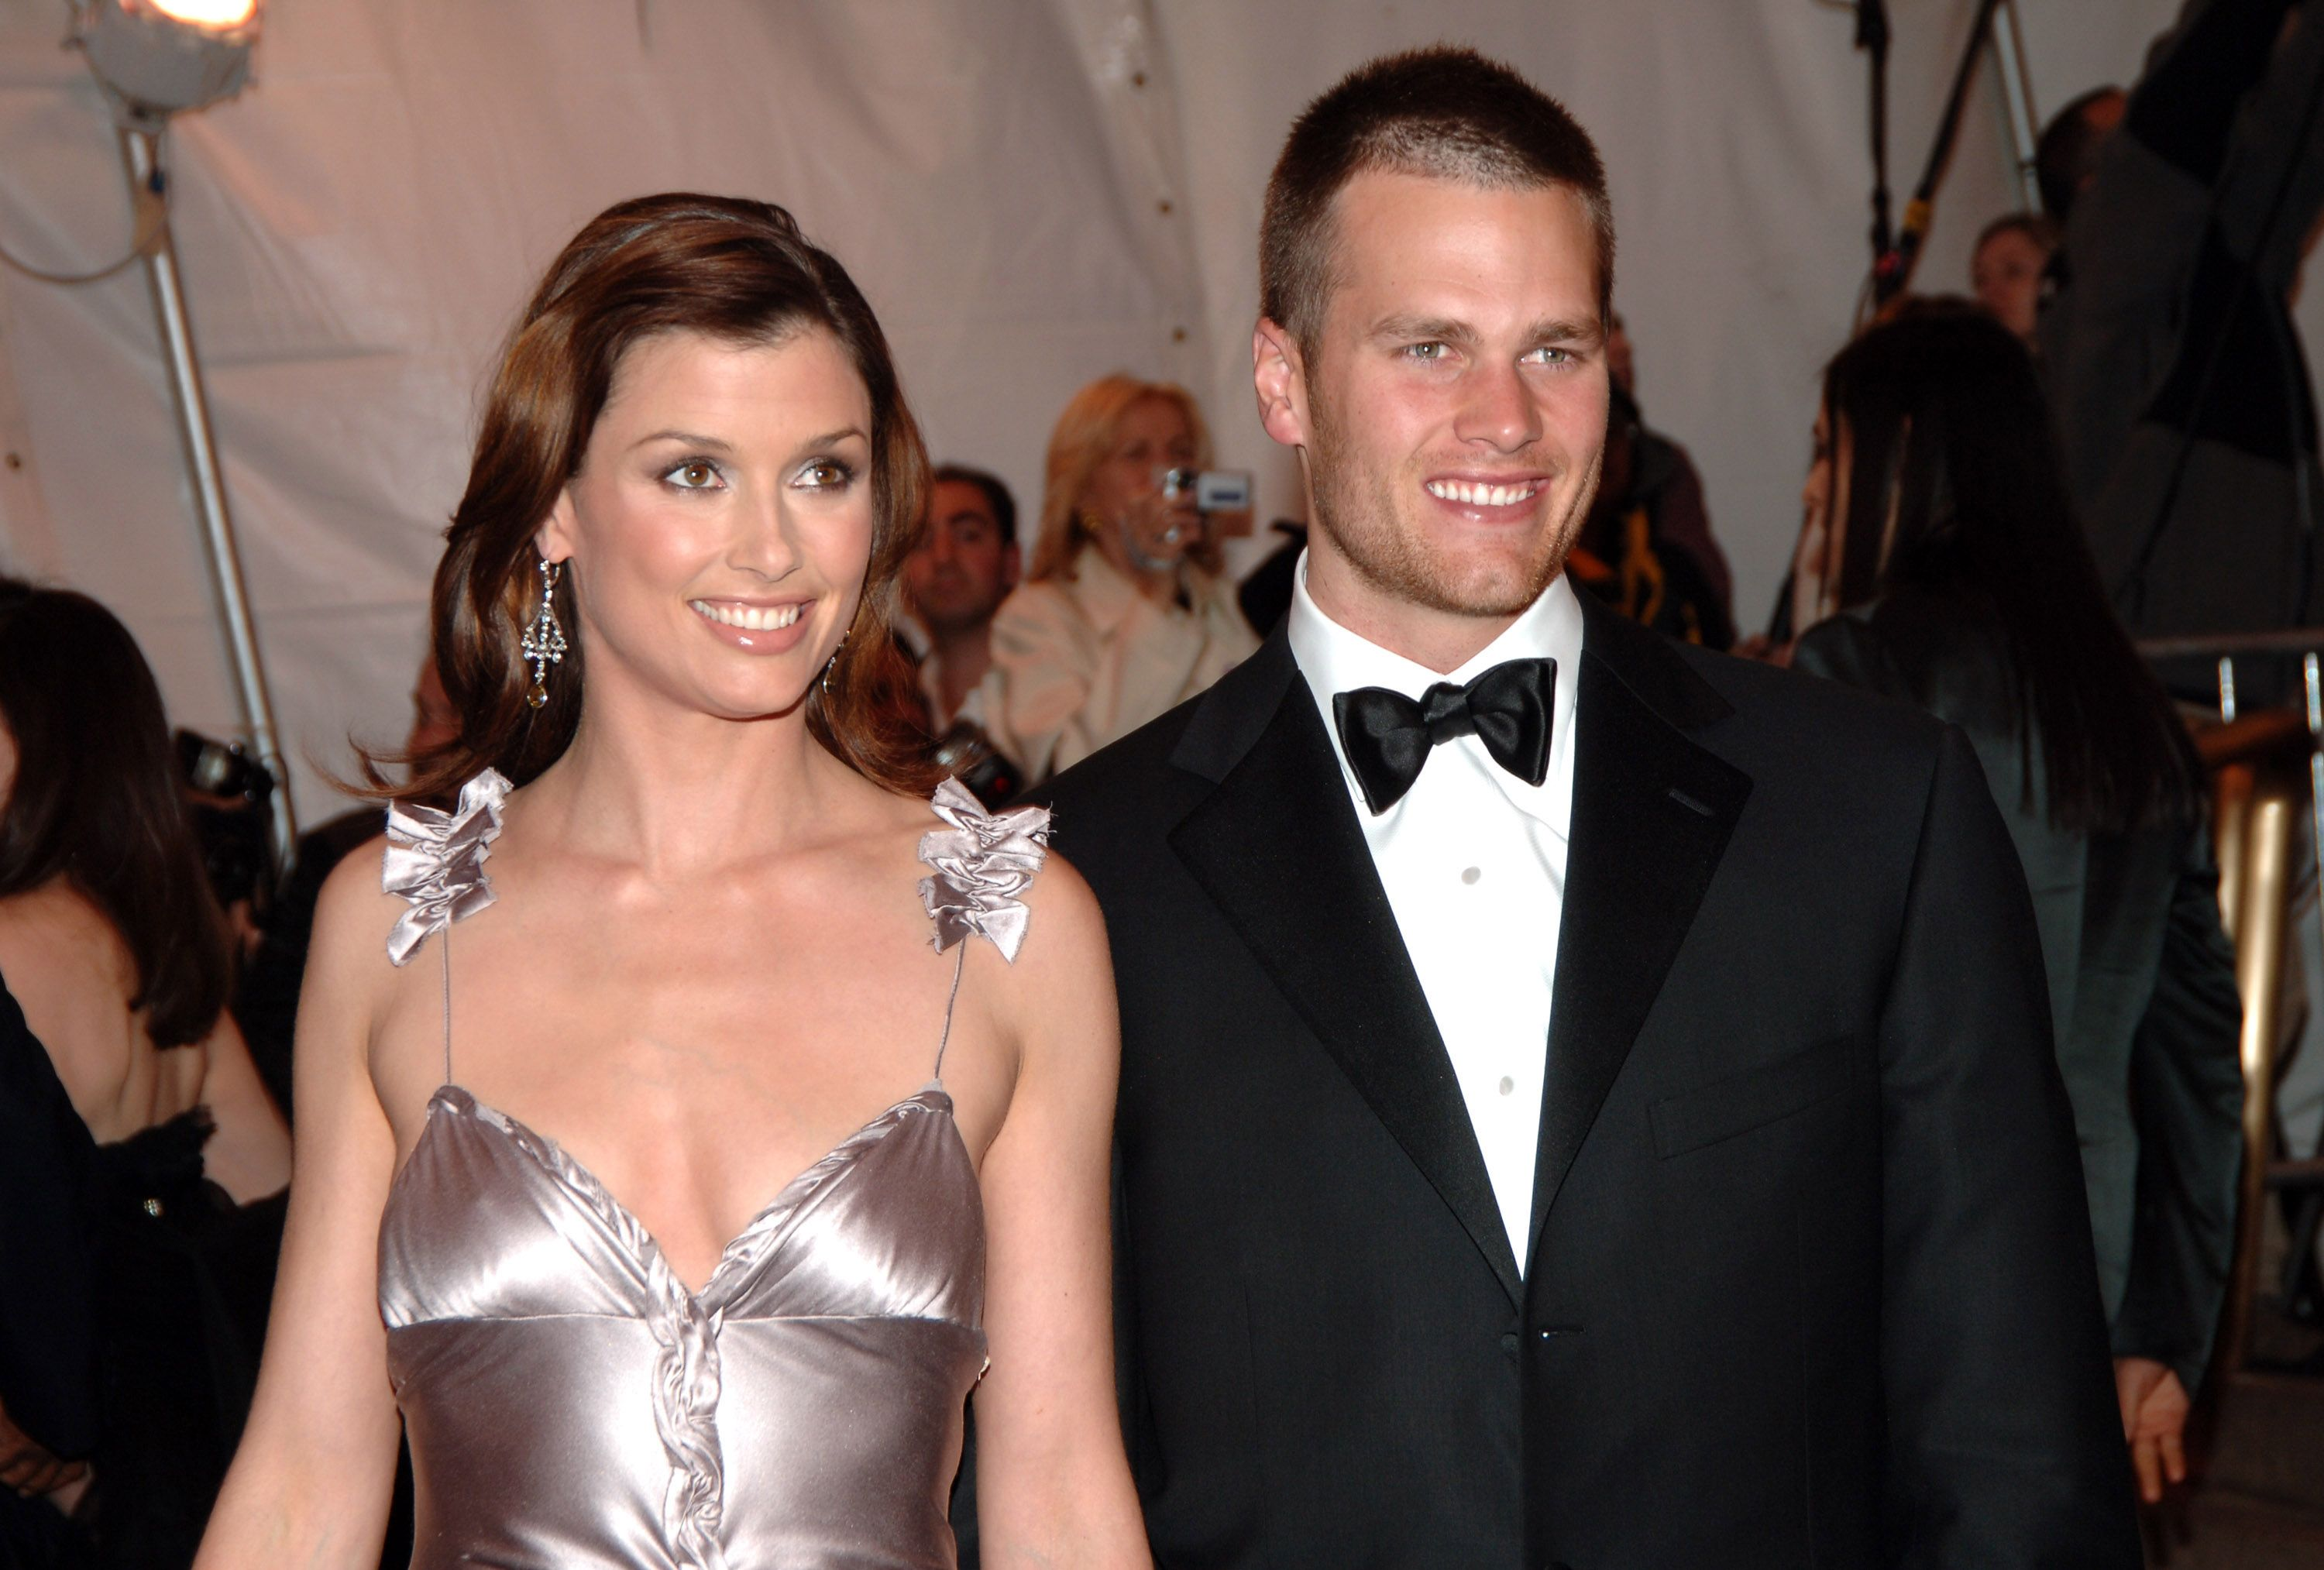 Bridget Moynahan Reveals How Her Public Breakup With Tom Brady Affected Her Pregnancy